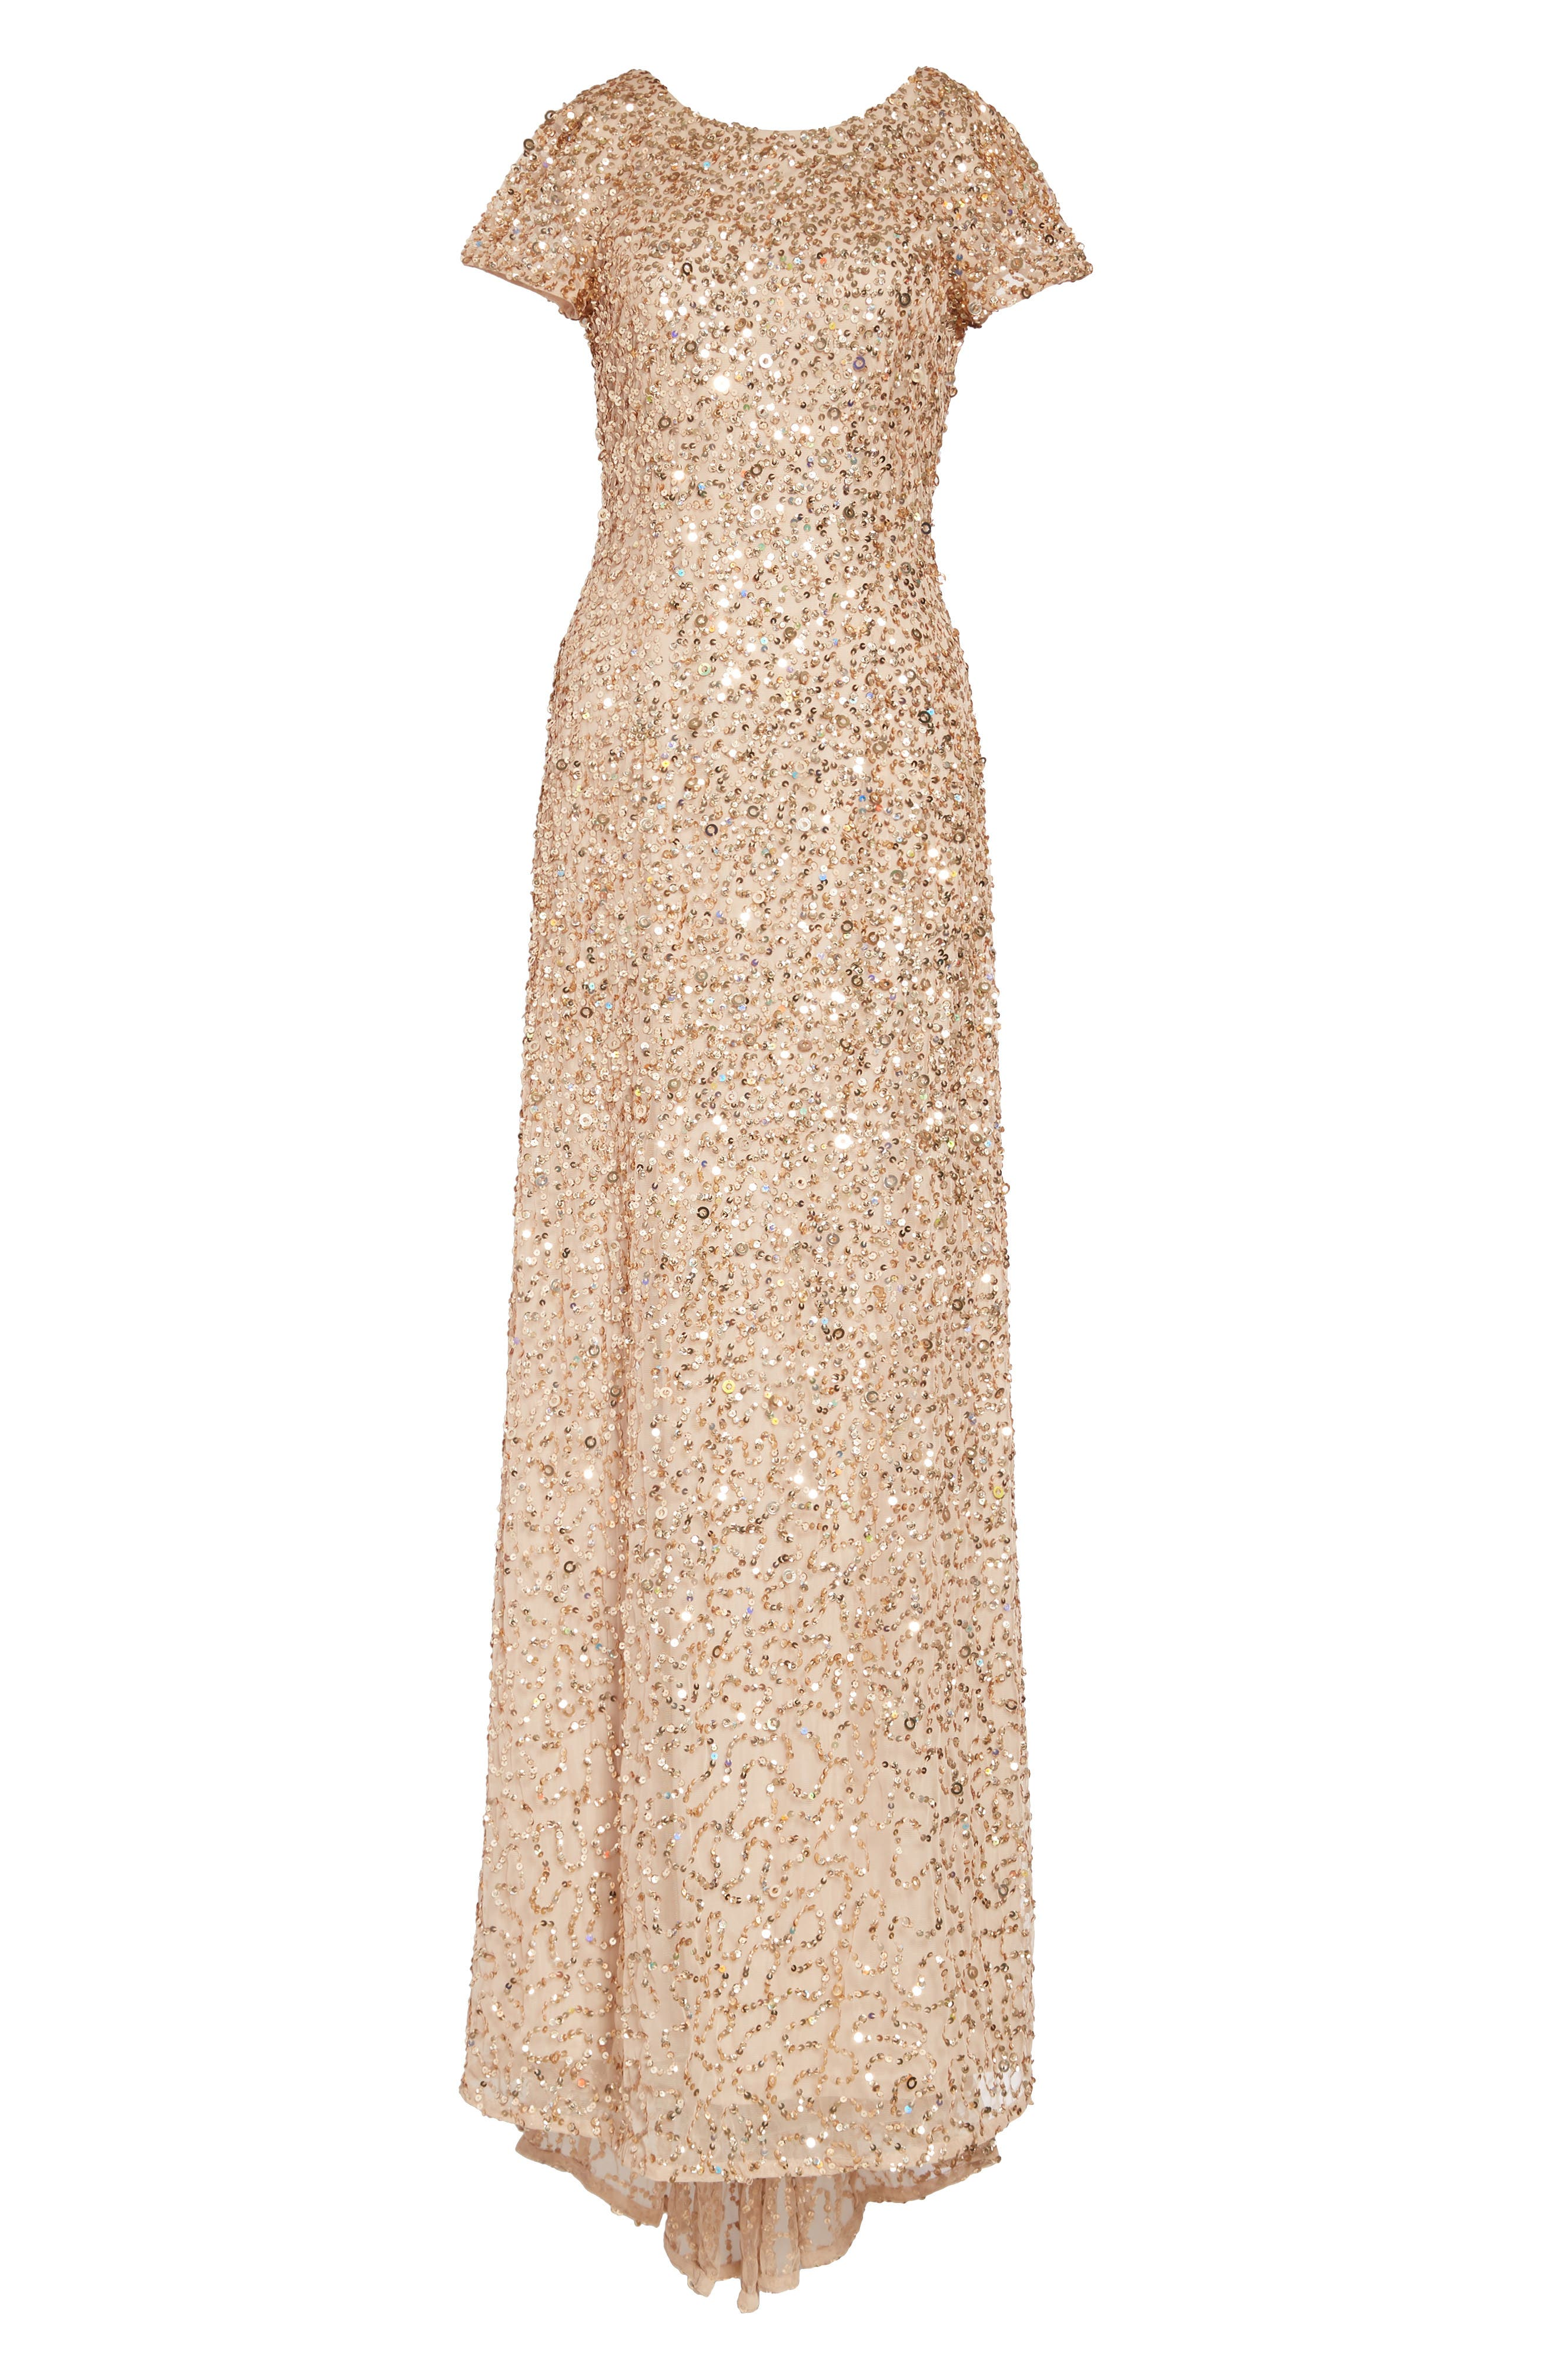 Short Sleeve Sequin Mesh Gown,                             Alternate thumbnail 6, color,                             CHAMPAGNE/ GOLD